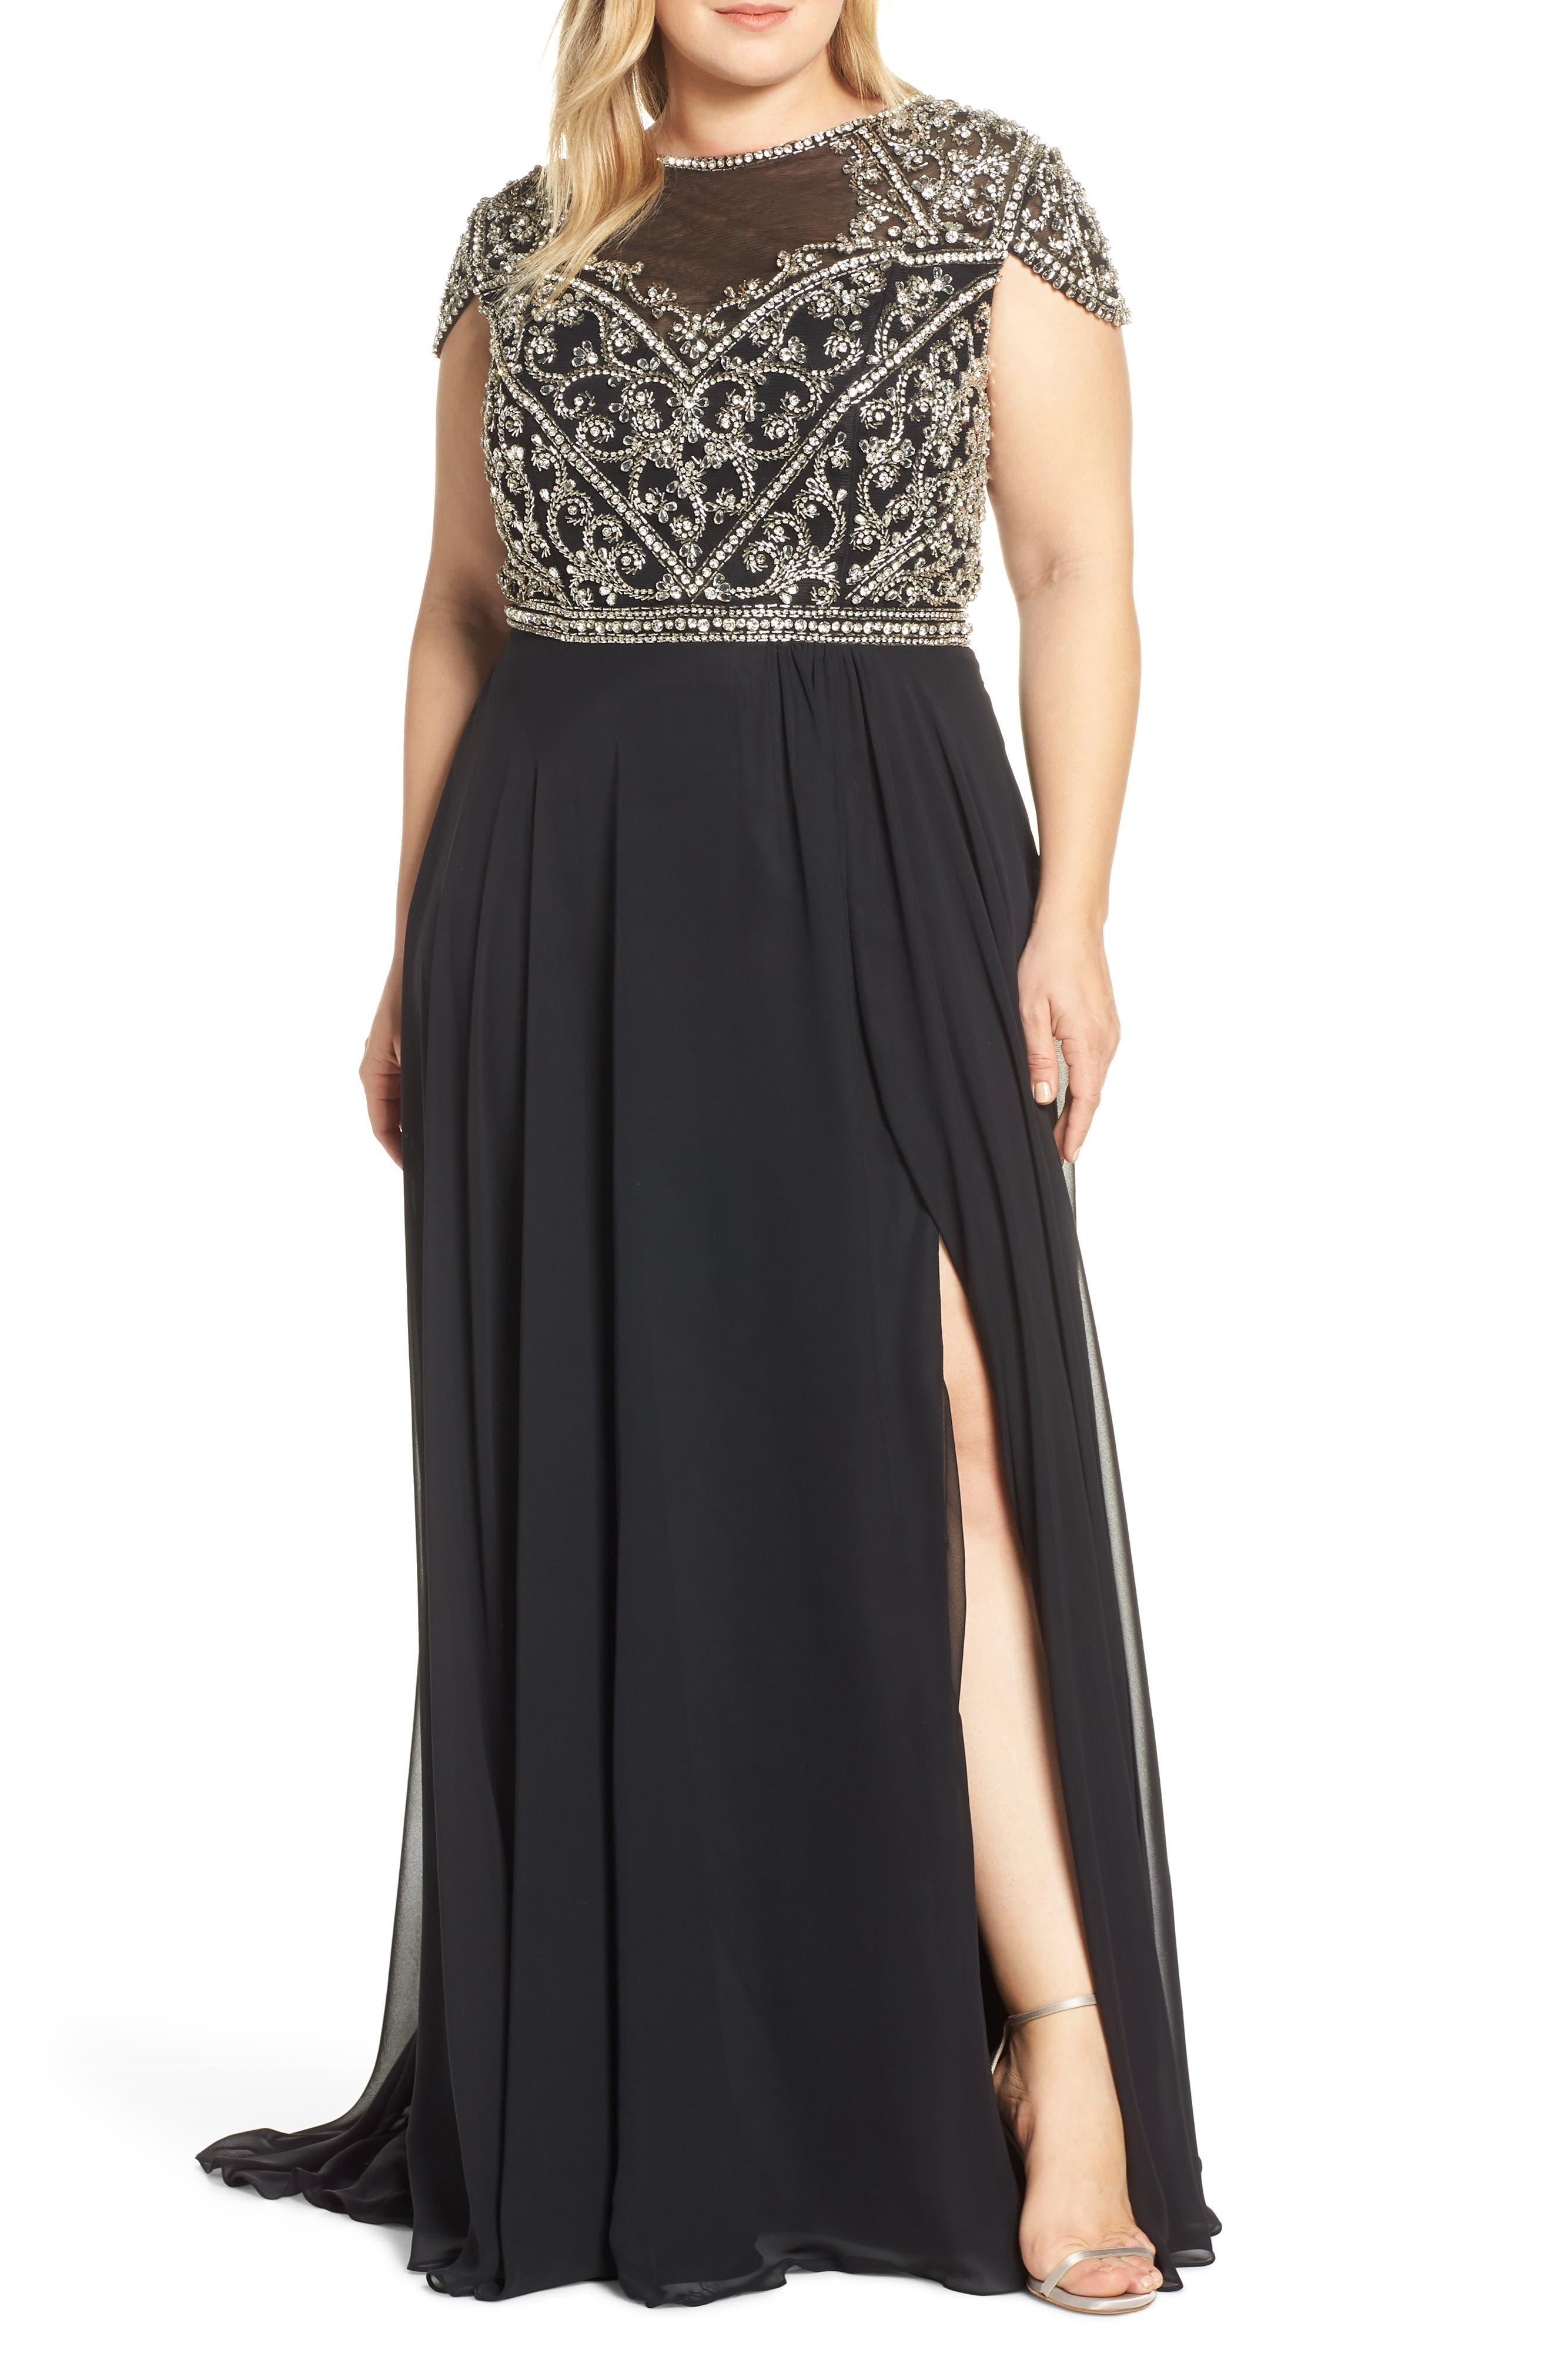 Plus Size MAC Duggal Embellished Bodice Evening Dress, Black